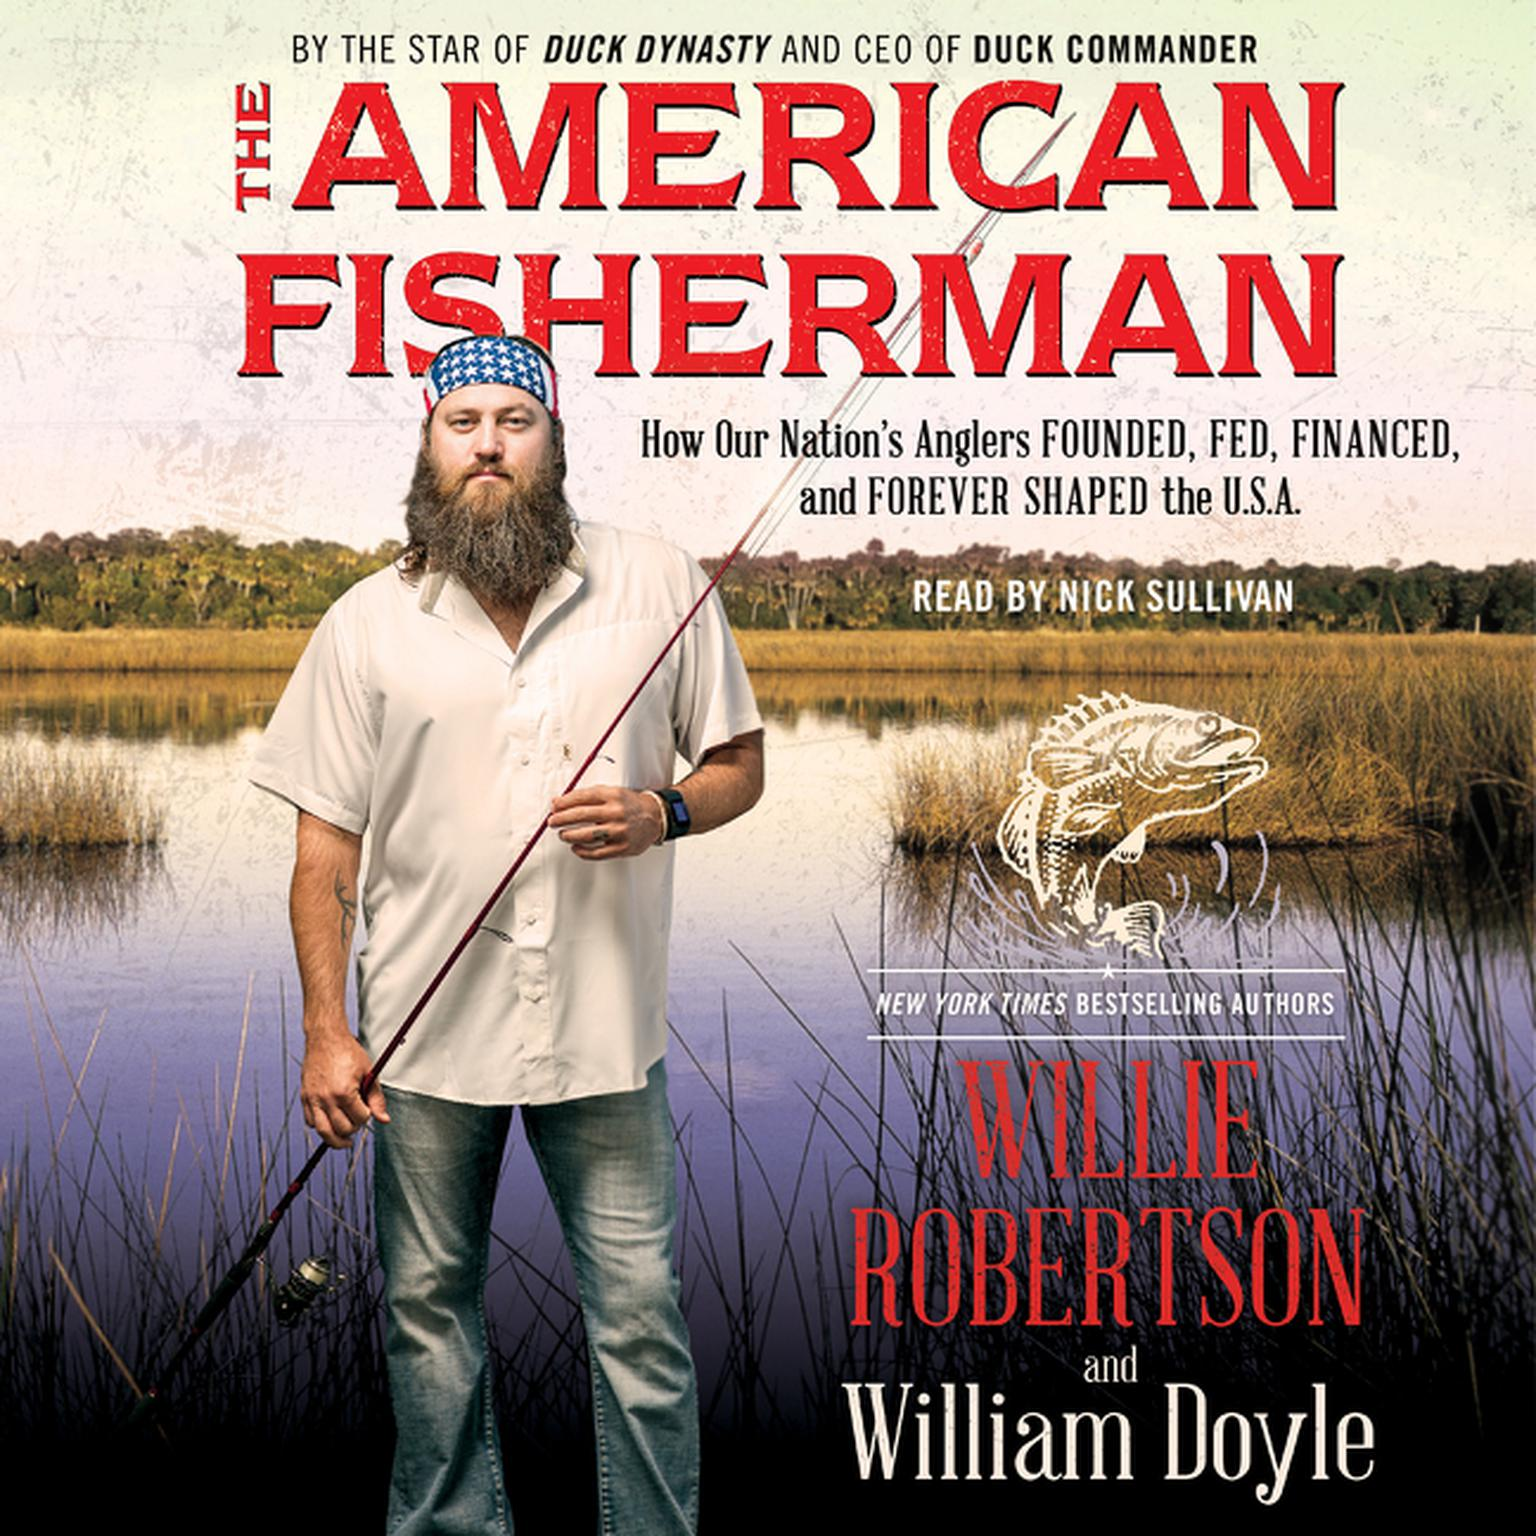 Printable The American Fisherman: How Our Nation's Anglers Founded, Fed, Financed, and Forever Shaped the USA Audiobook Cover Art